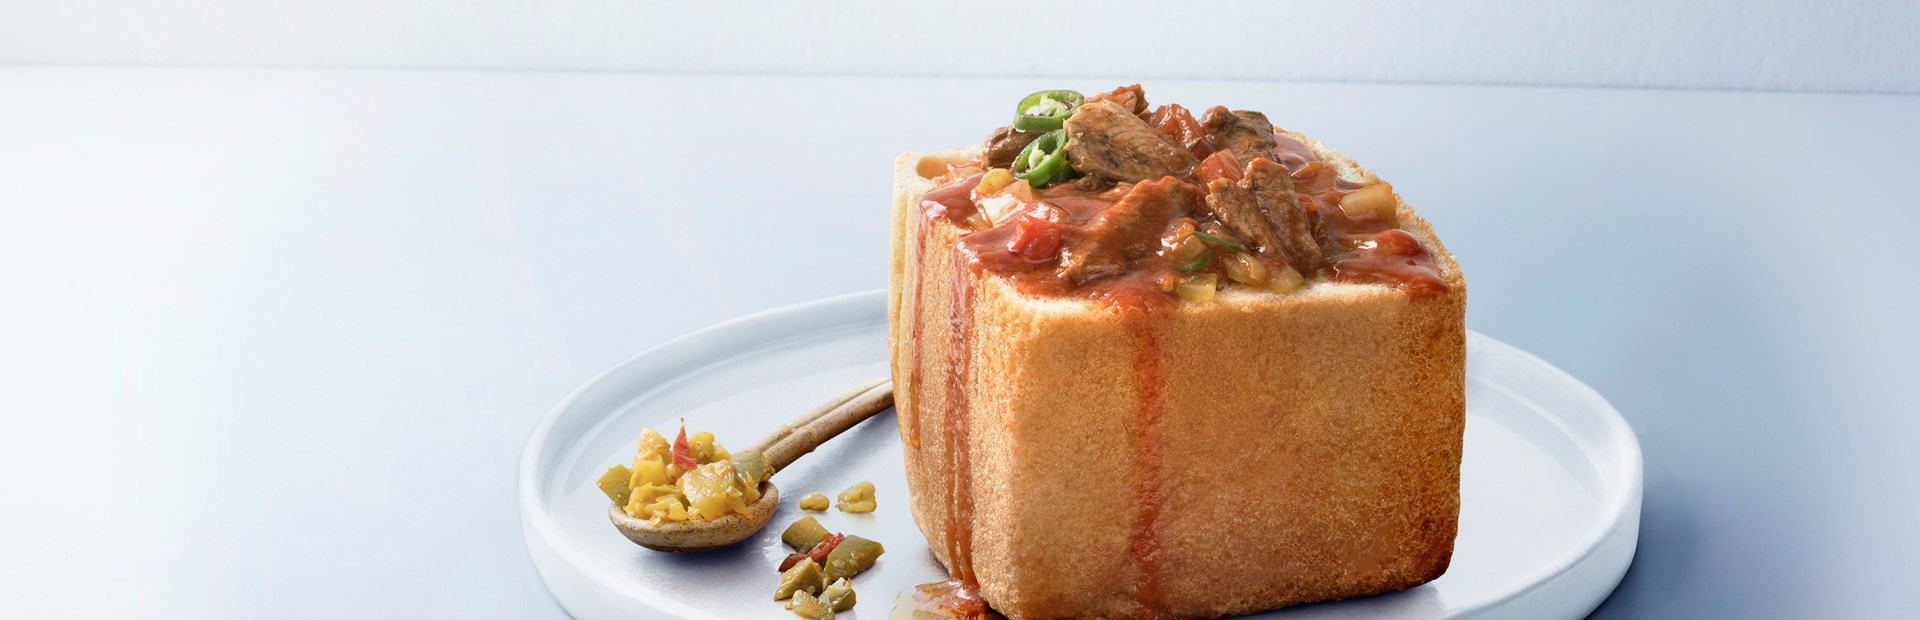 spicy pilchard bunny chow banner